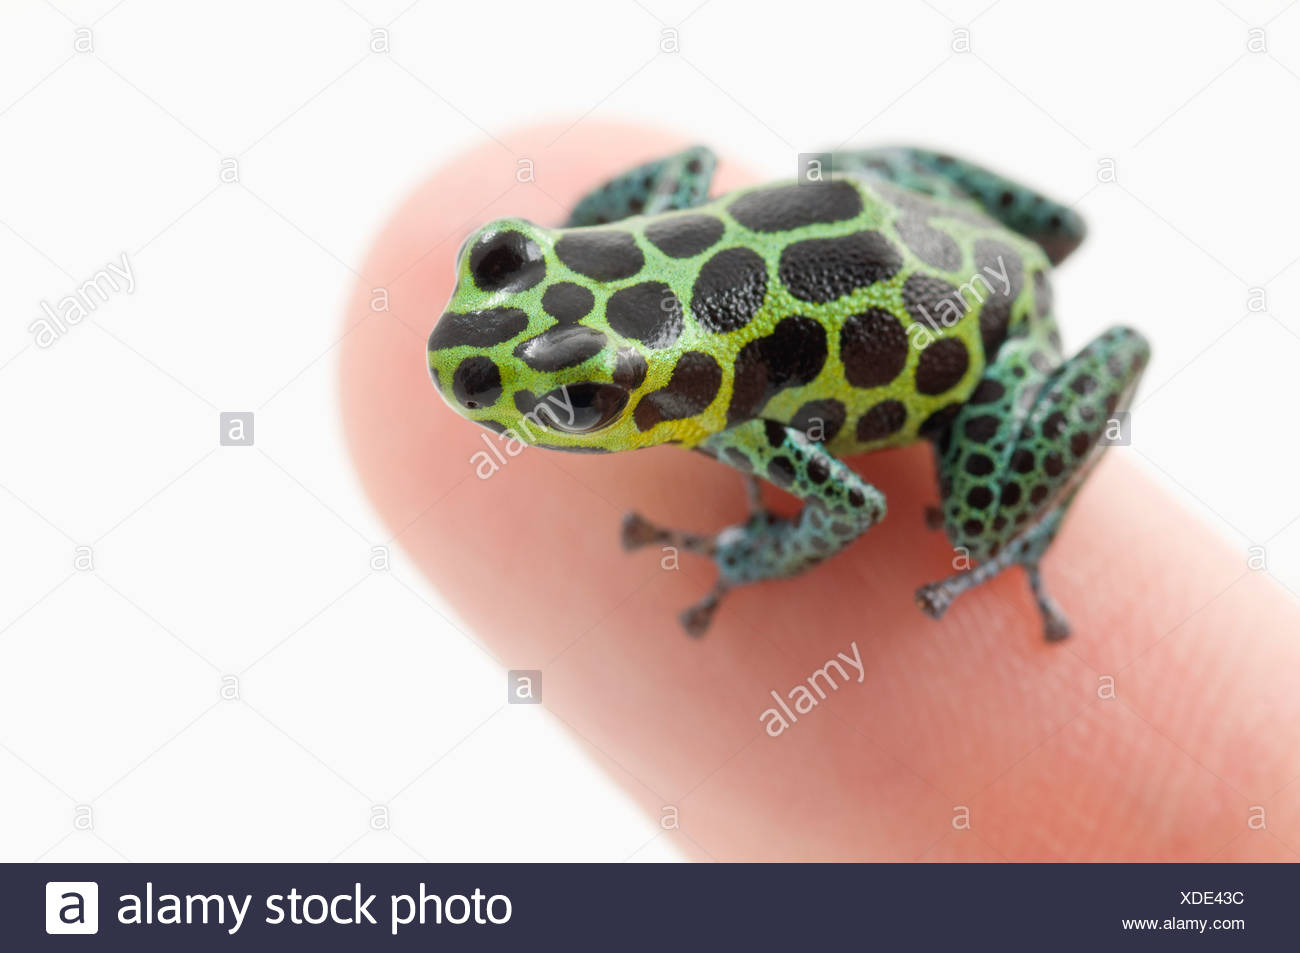 Black Spotted Green Poison Dart Frog (Ranitomeya Imitator) On A Person's Finger Stock Photo